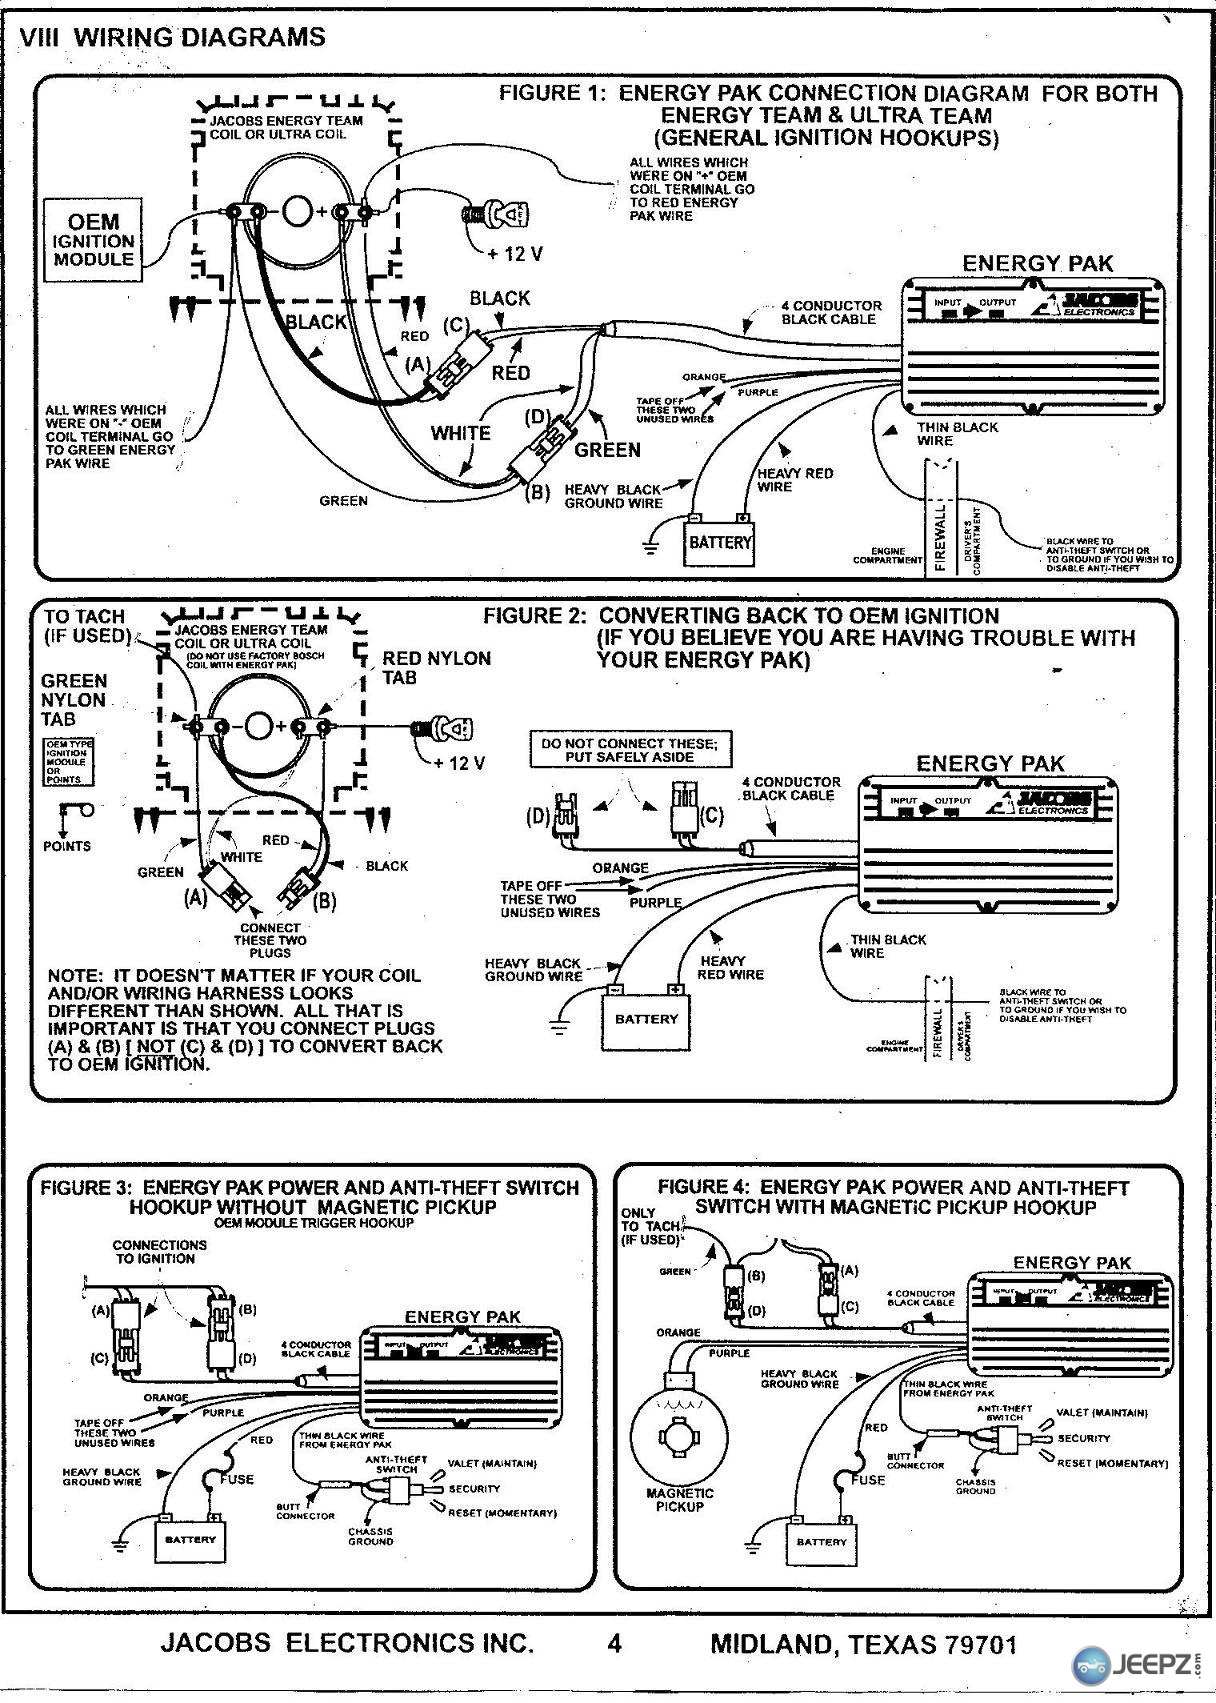 2965d1246241329 jacobs ignition jeepz jacobs ignition diagram?resize\\\\d665%2C931\\\\6ssl\\\\d1 jacobs ignition ultra coil wiring diagram wiring diagrams jacobs ultra coil wiring diag at fashall.co